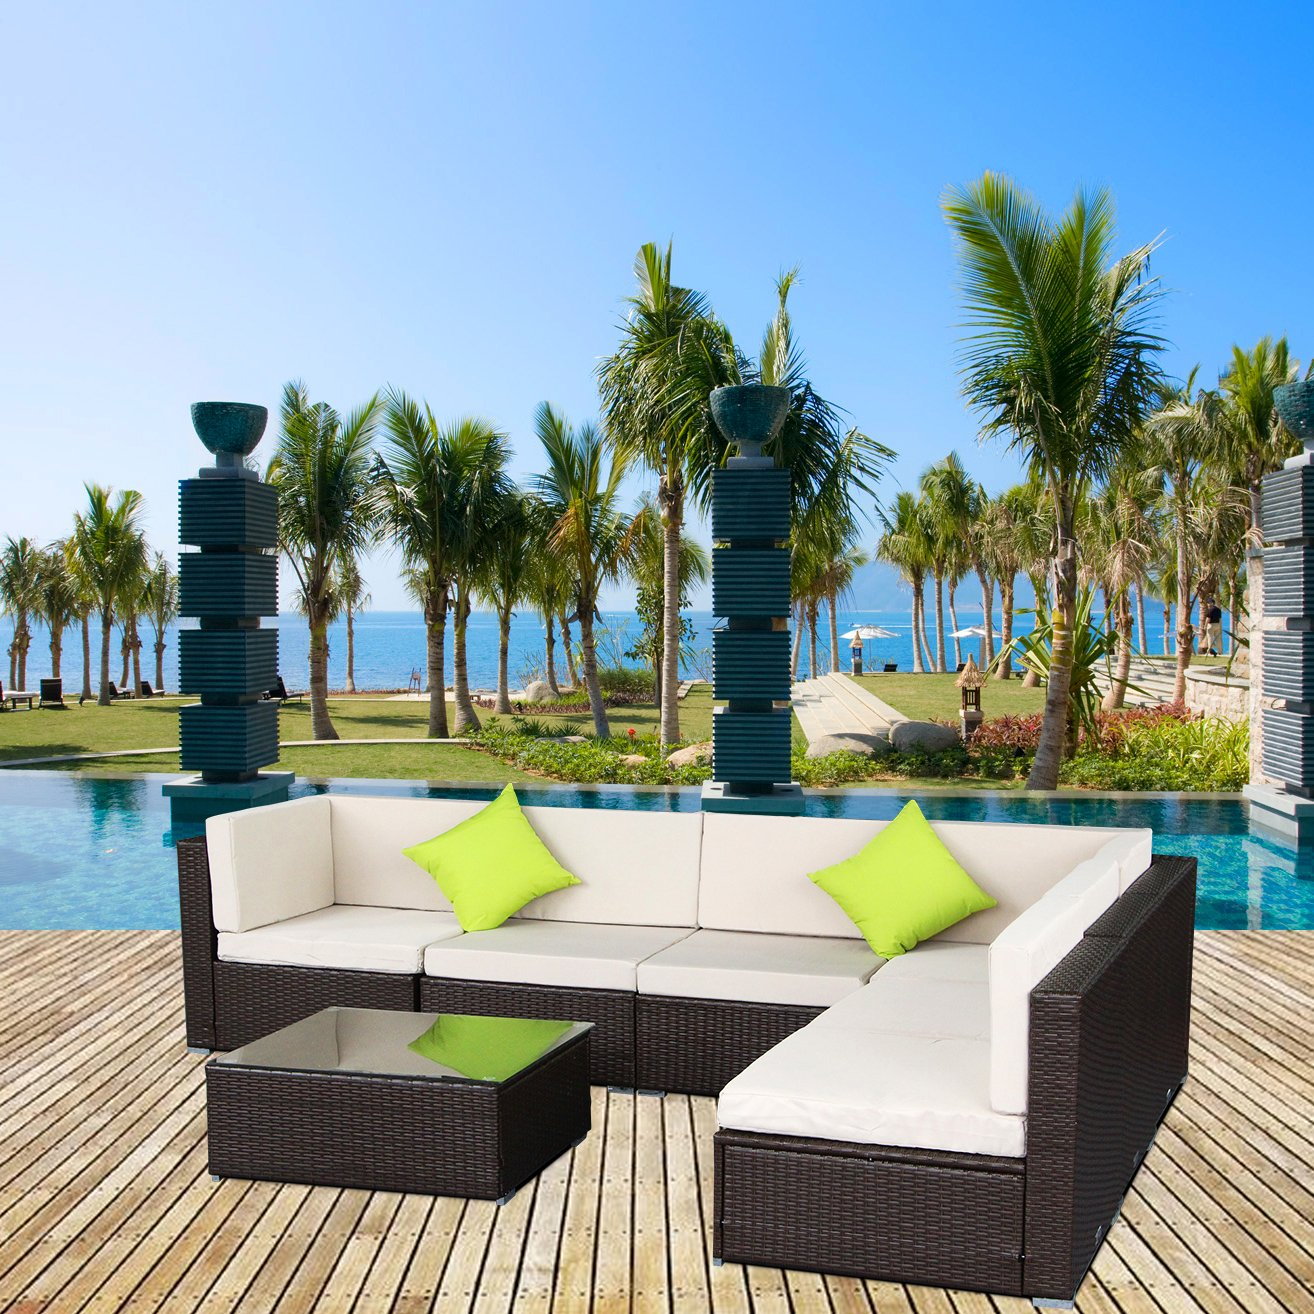 AECOJOY 7 Piece Outdoor Patio PE Rattan Wicker Sofa Cushioned Sectional Furniture Set (7 Pieces, Brown) by AECOJOY (Image #5)